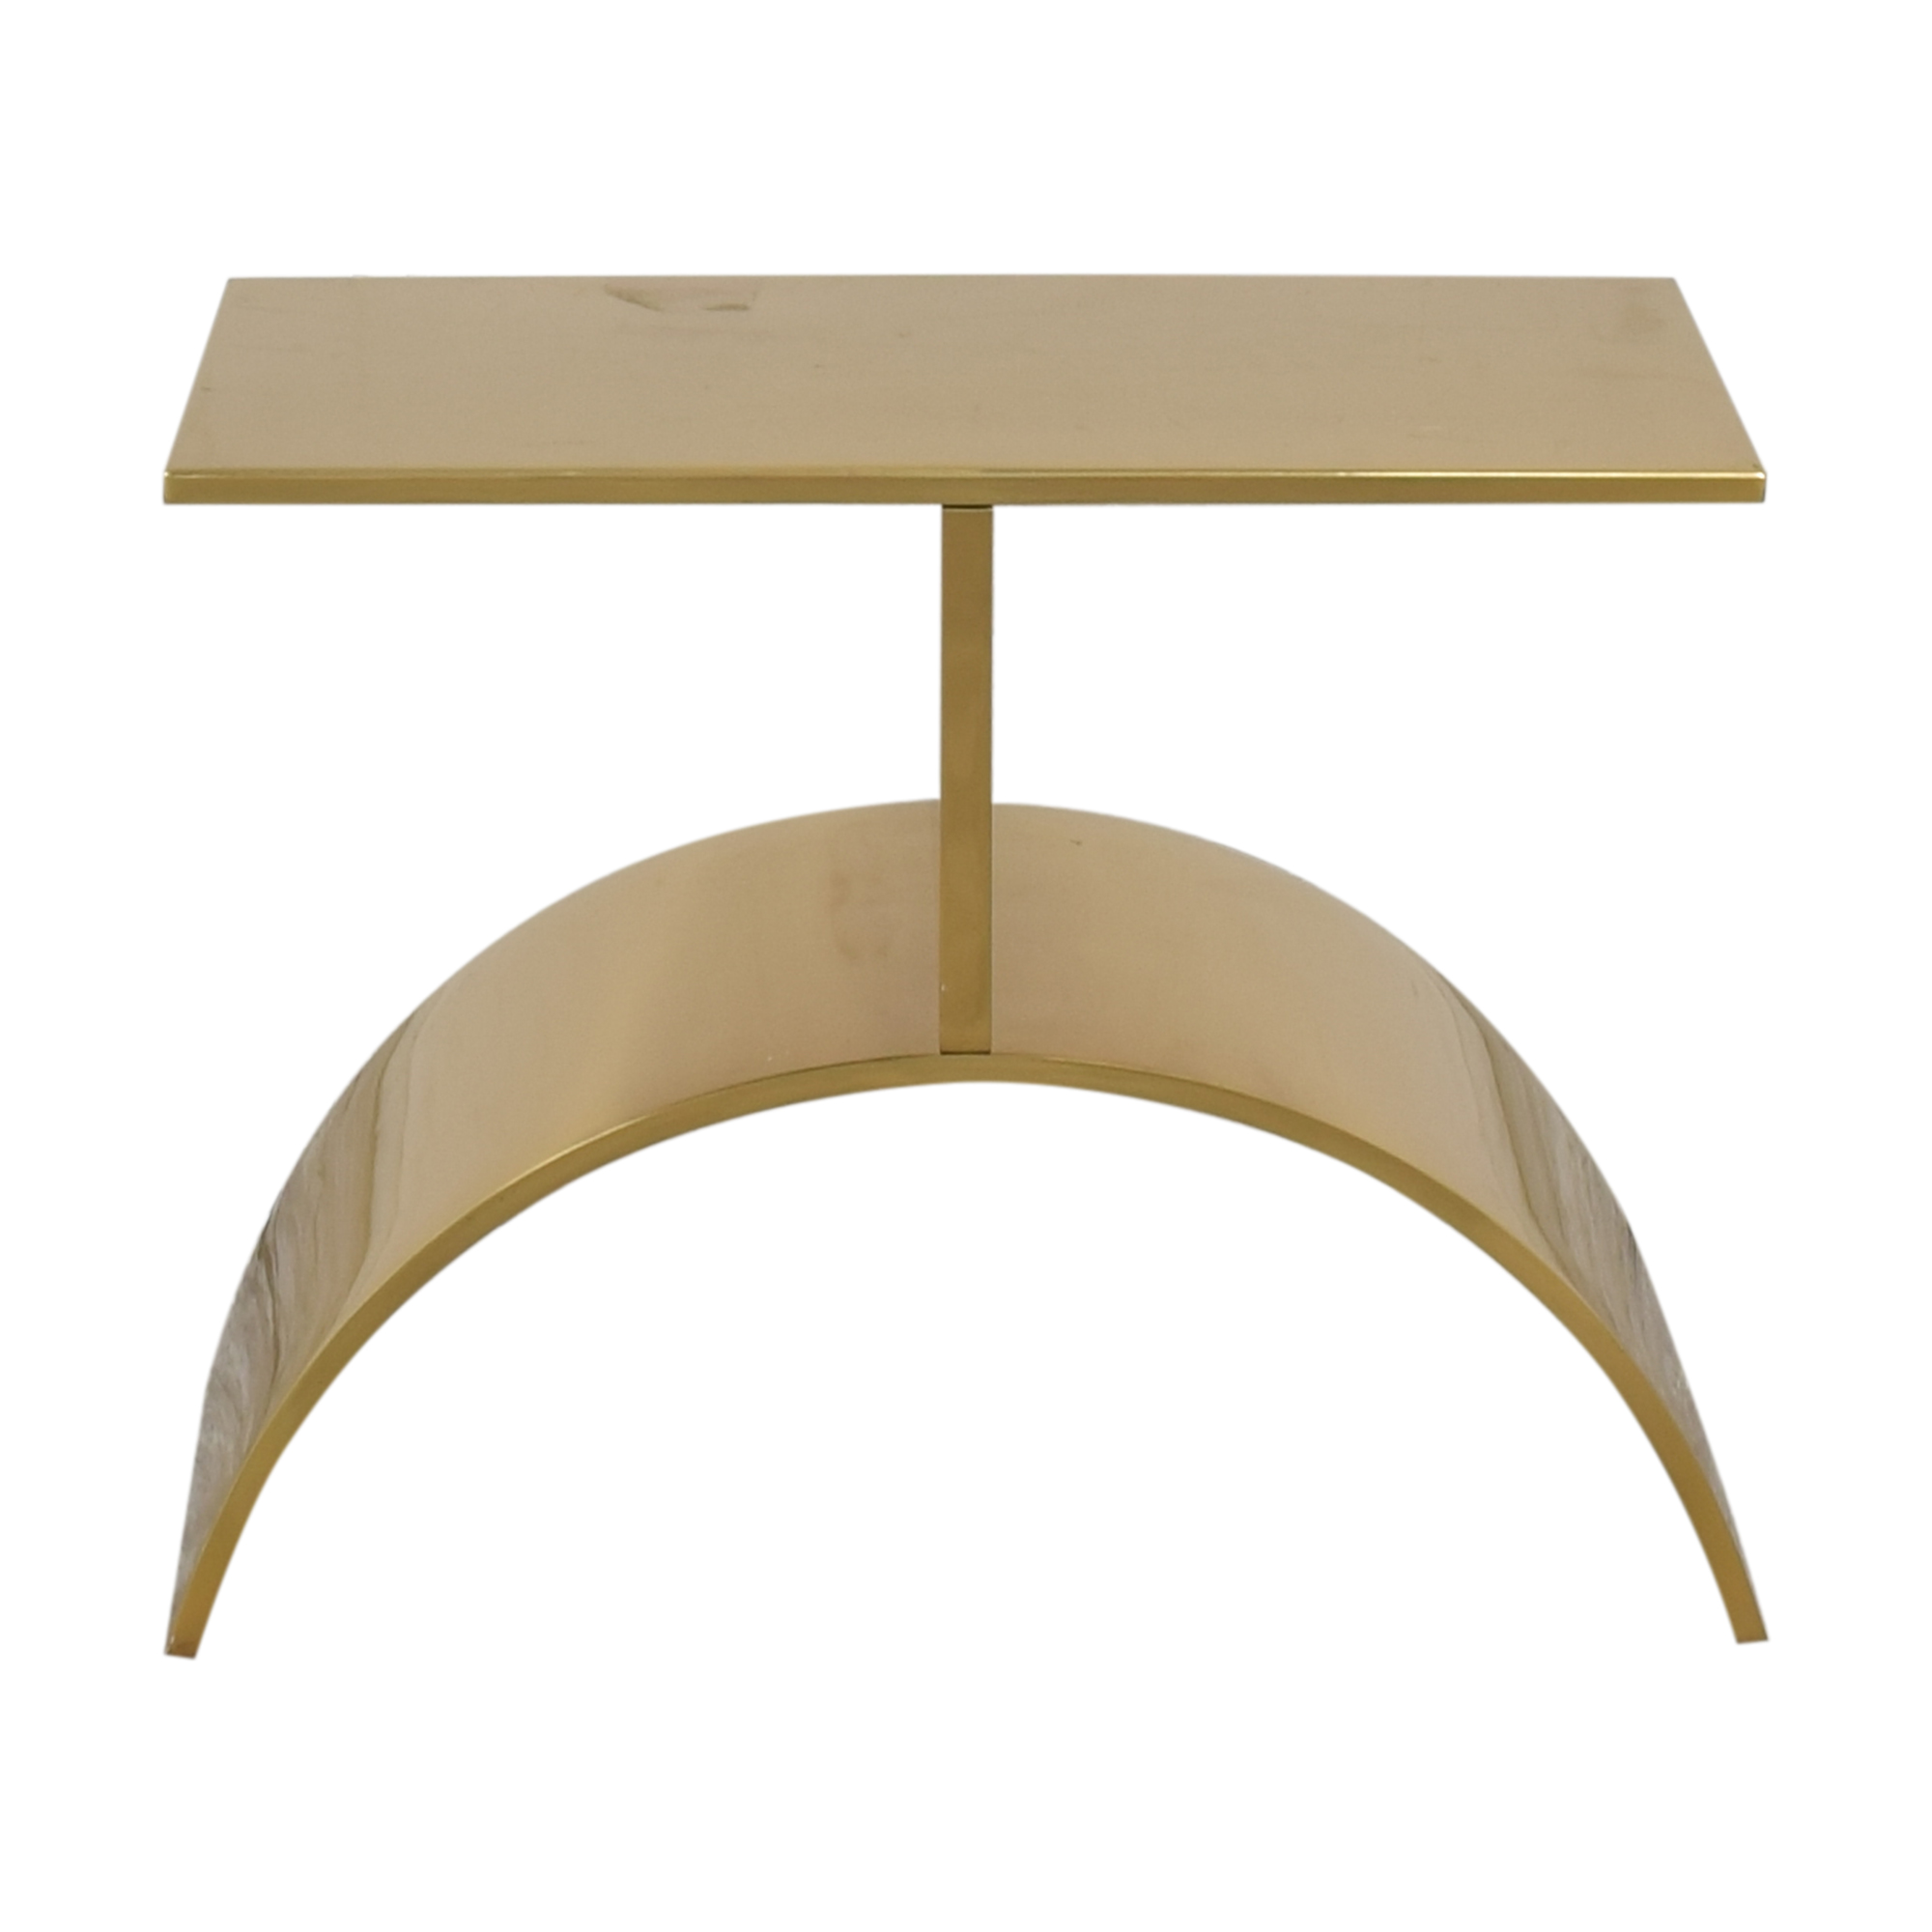 CB2 Curve Gold Side Table CB2